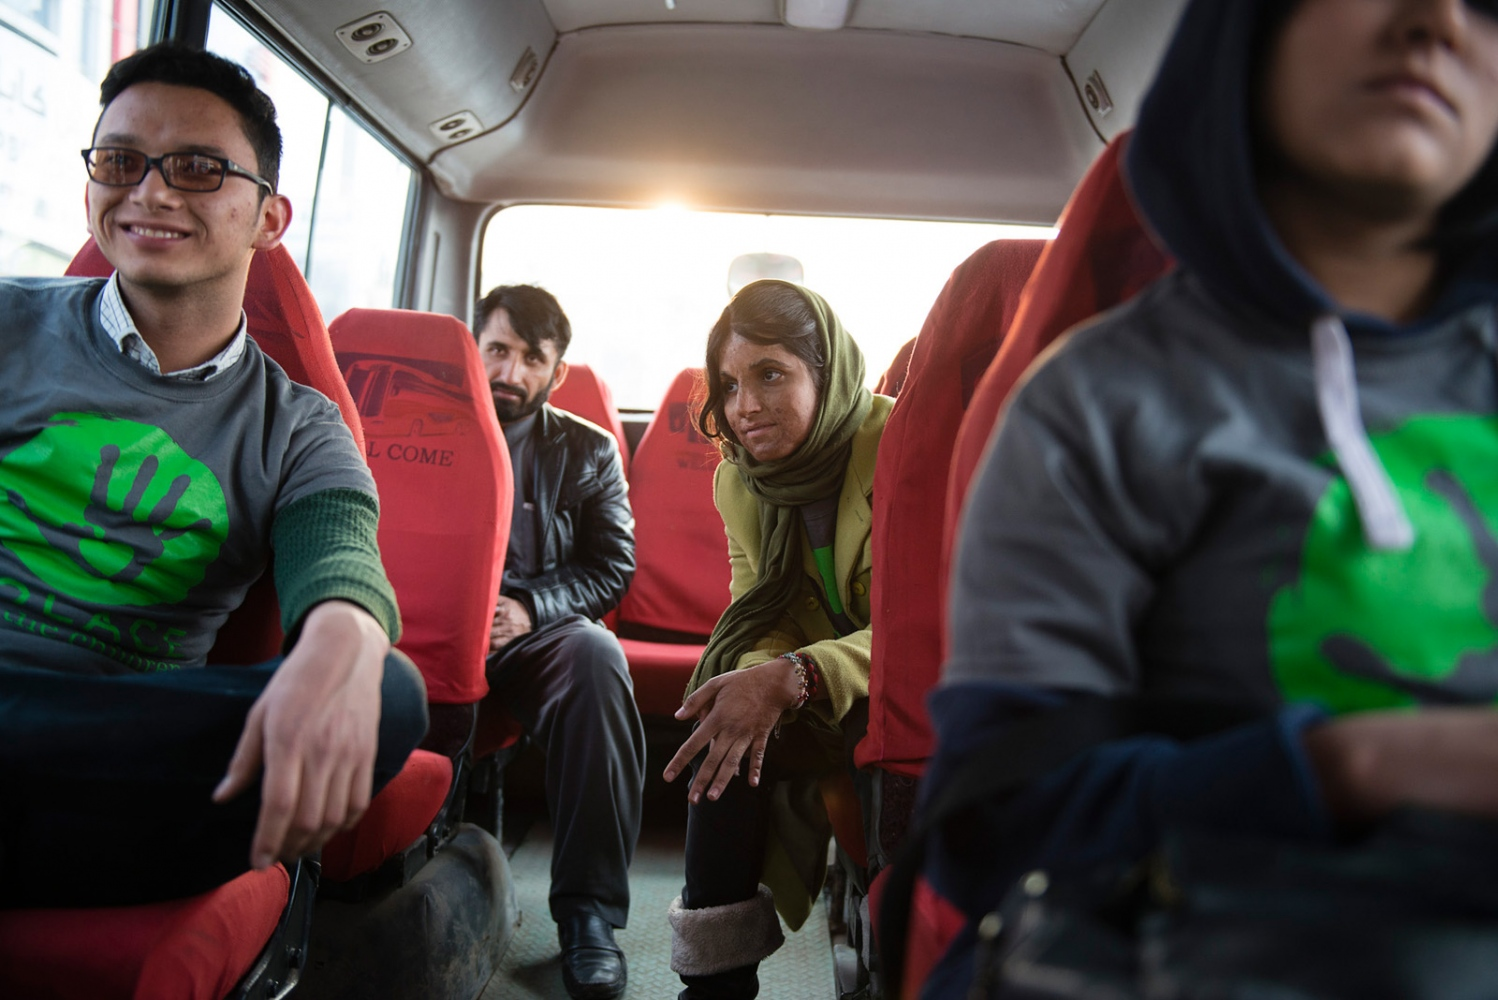 KABUL, AFGHANISTAN | 2015-02-27 | After a long day of distributions, volunteers working with a grassroots afghan NGO, all very young university students, ride a bus back to their base to end their weekly mission, blanket and warm clothes drive to those families in need.